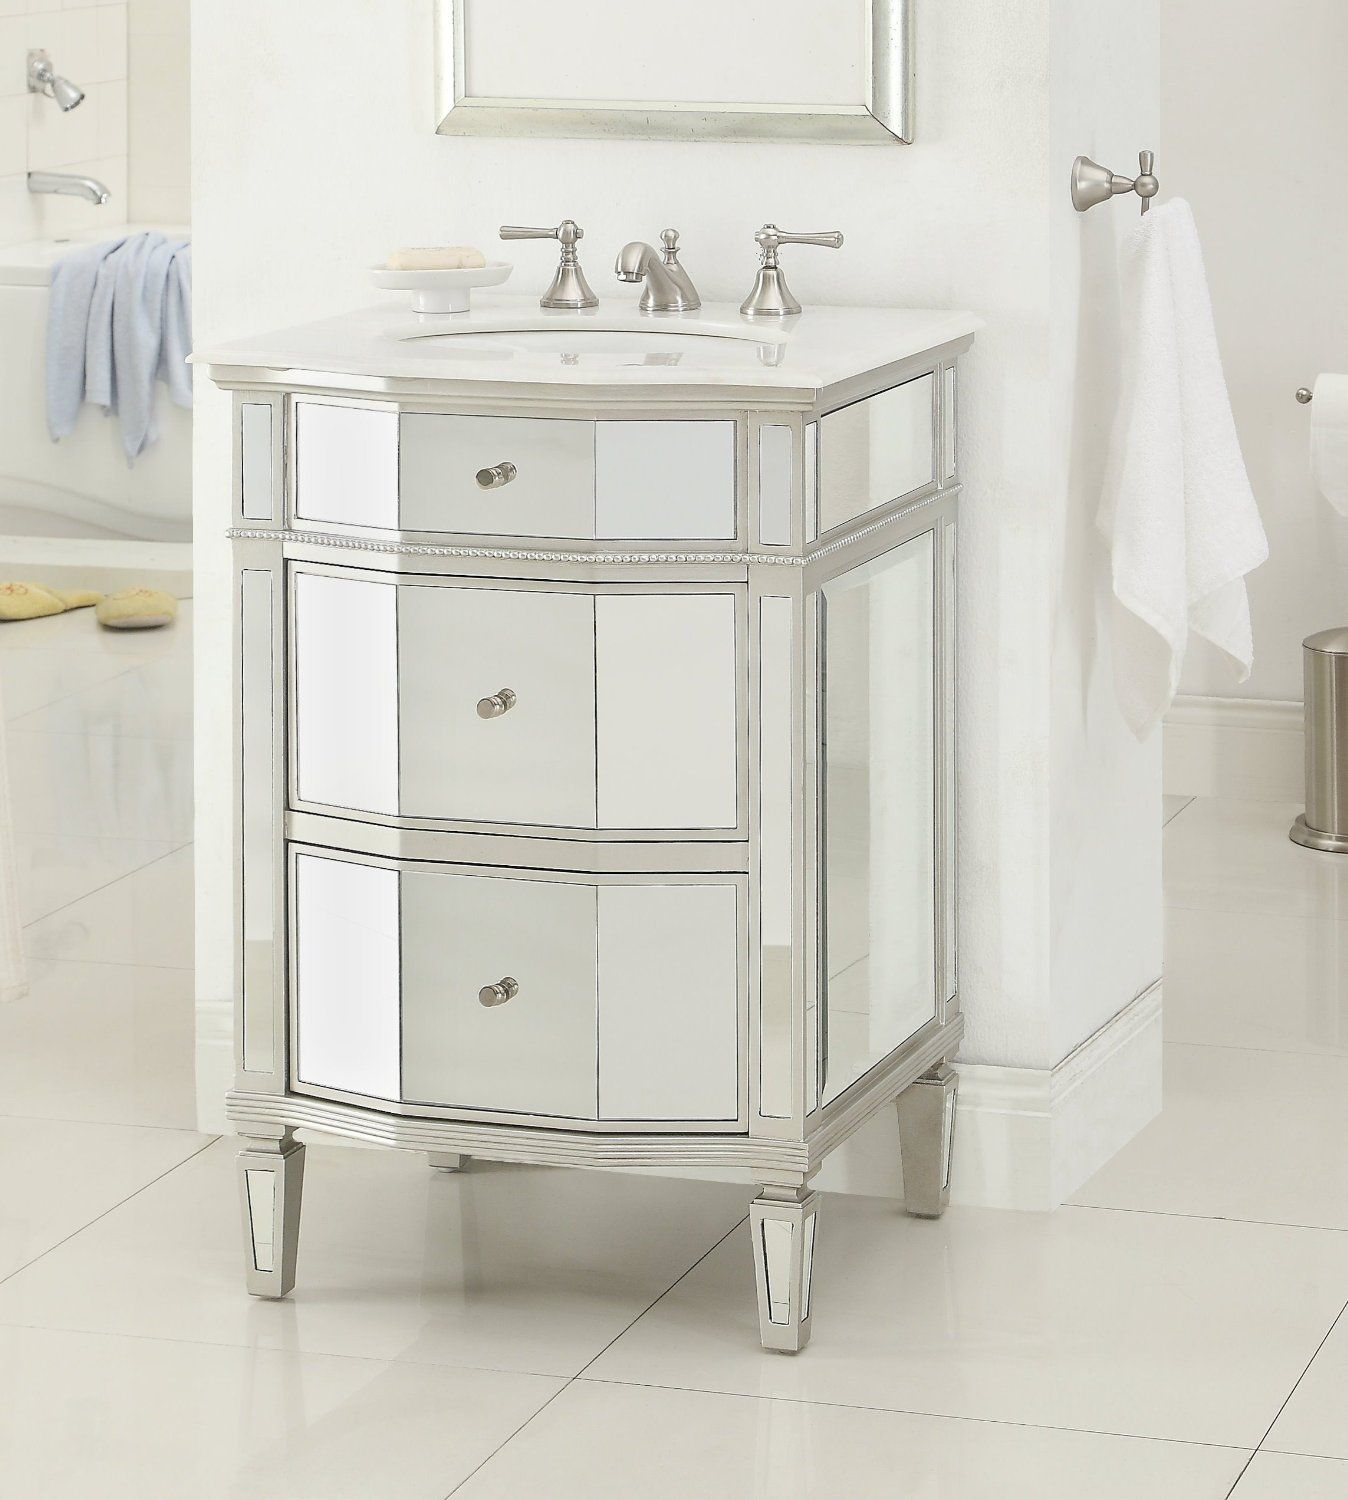 Bathroom Vanity Under $500 adelina 24 inch mirrored bathroom vanity, imperial white marble